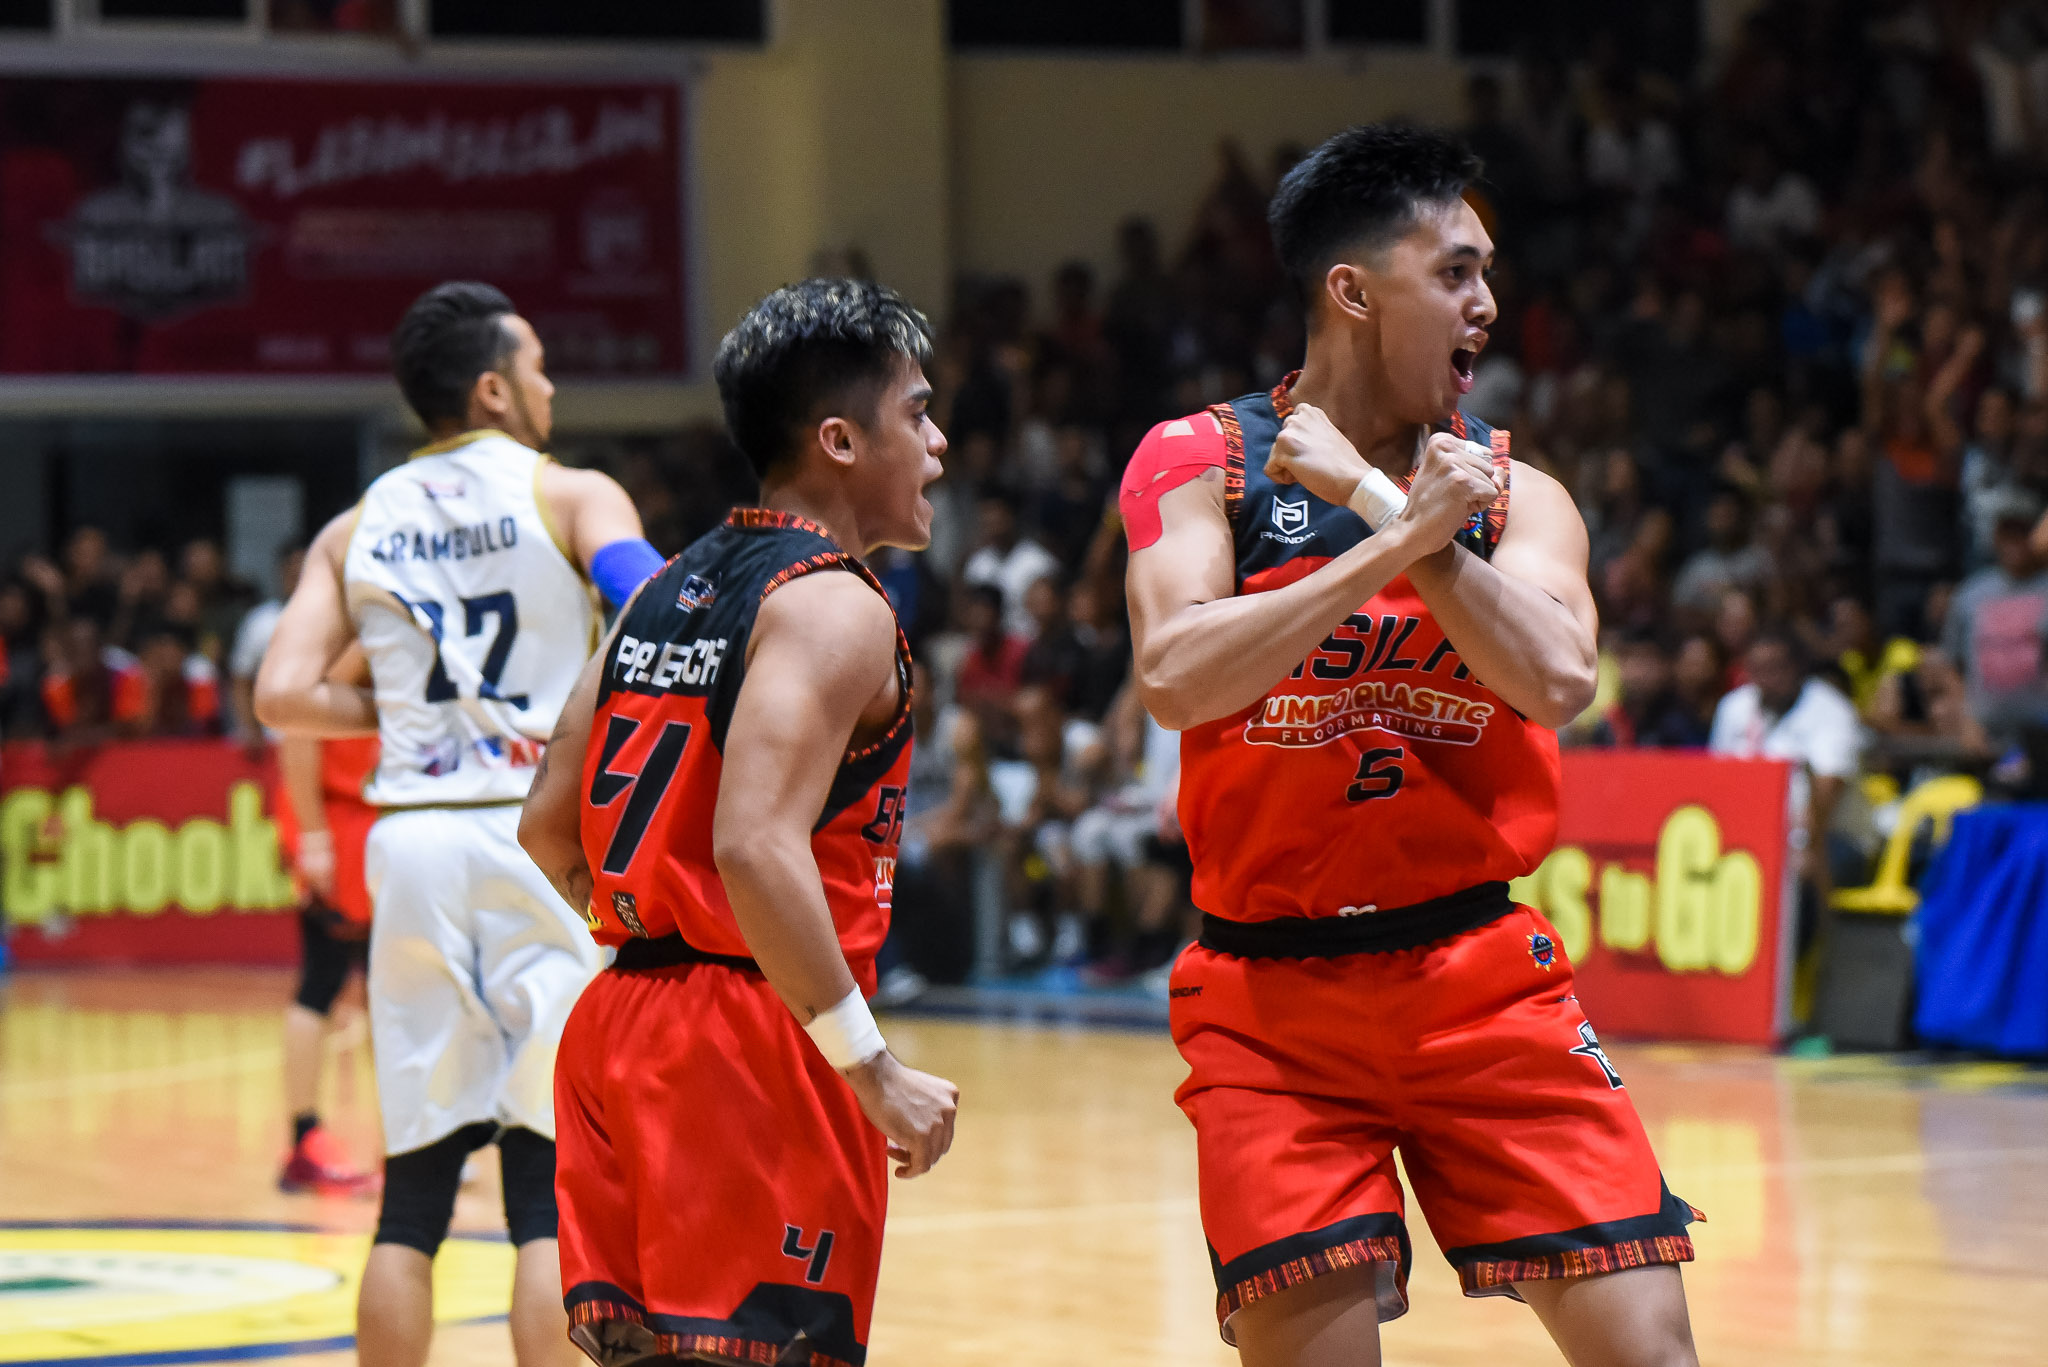 Chooks-MPBL-2019-Basilan-vs-Iloilo-Bulanadi Basilan Redefined: Basilan Steel's phenomenal rise in MPBL Basketball MPBL News  - philippine sports news